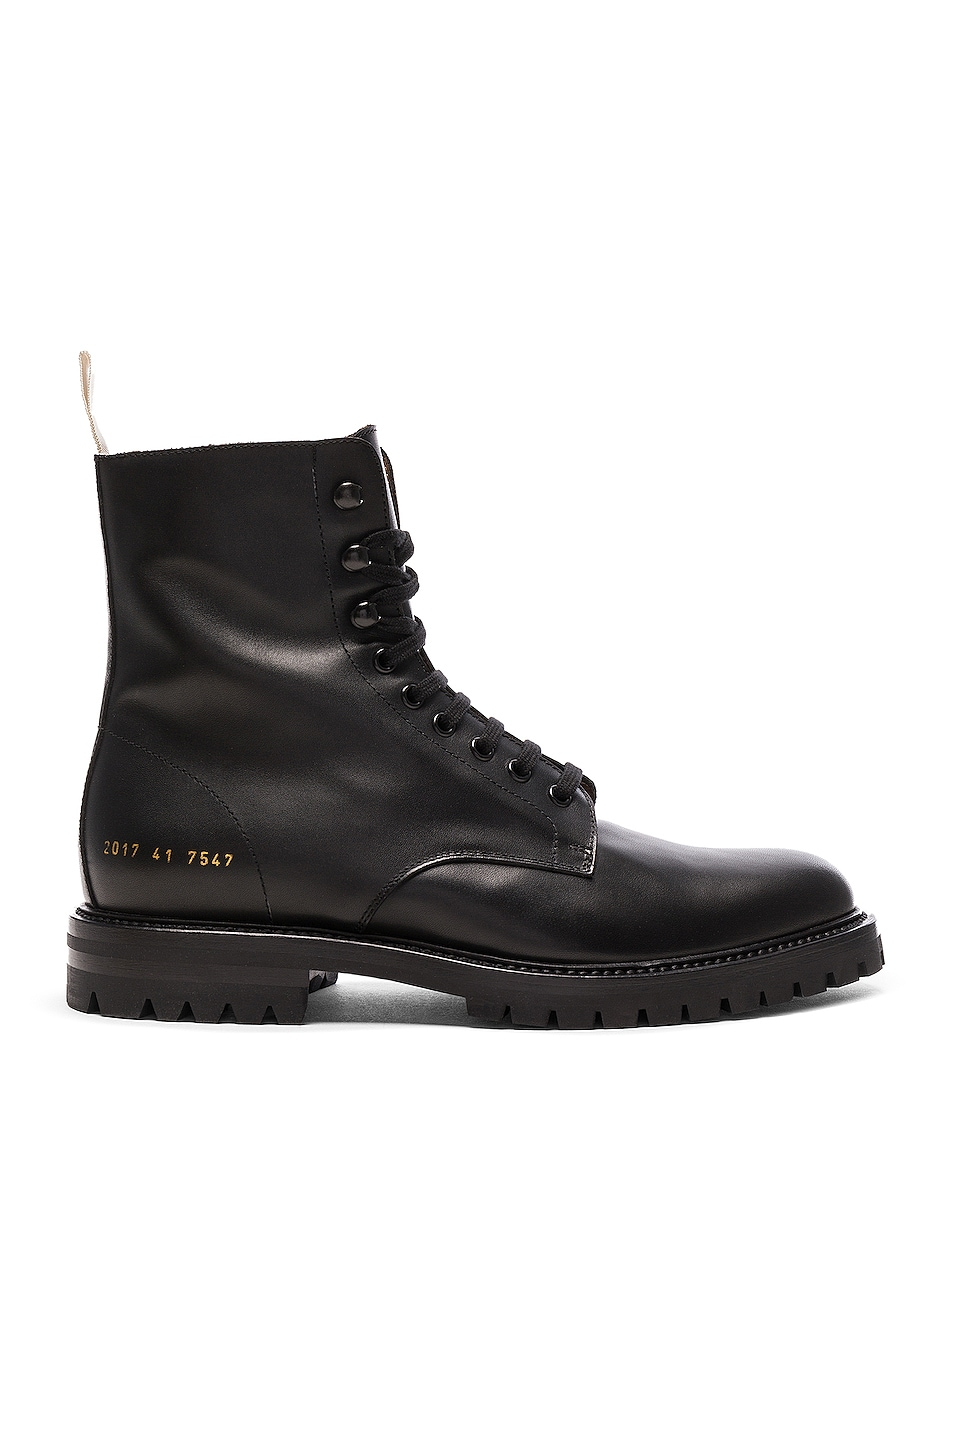 a03d374eae58c Image 1 of Common Projects Leather Winter Combat Boots in Black